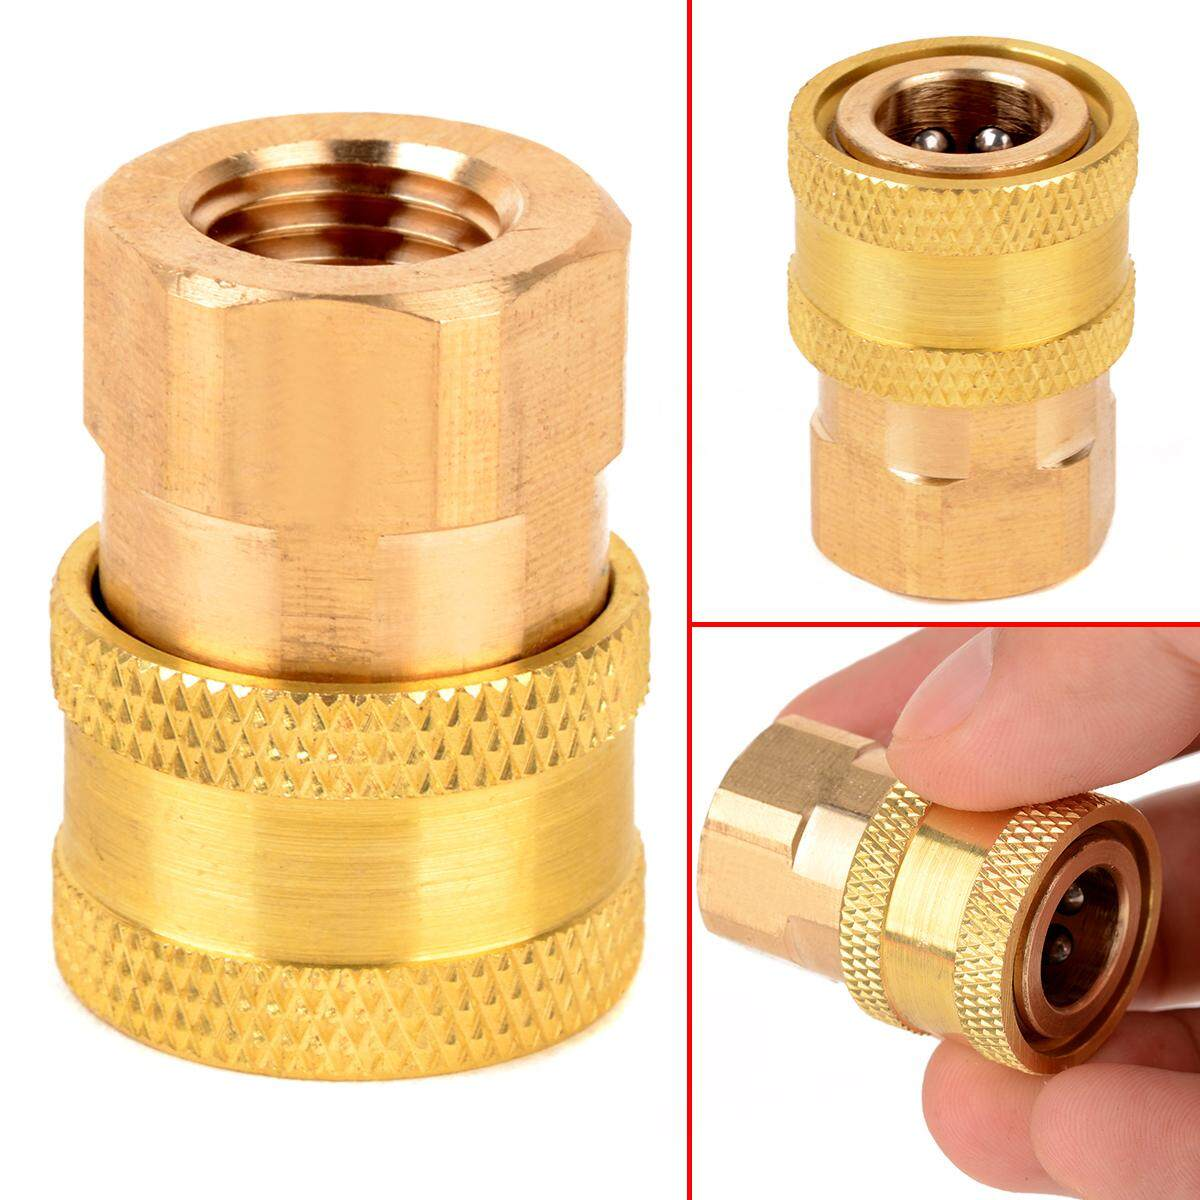 idealhere 1/4 Female NPT Brass Quick Connect Coupler for Pressure Washer 12mm ID